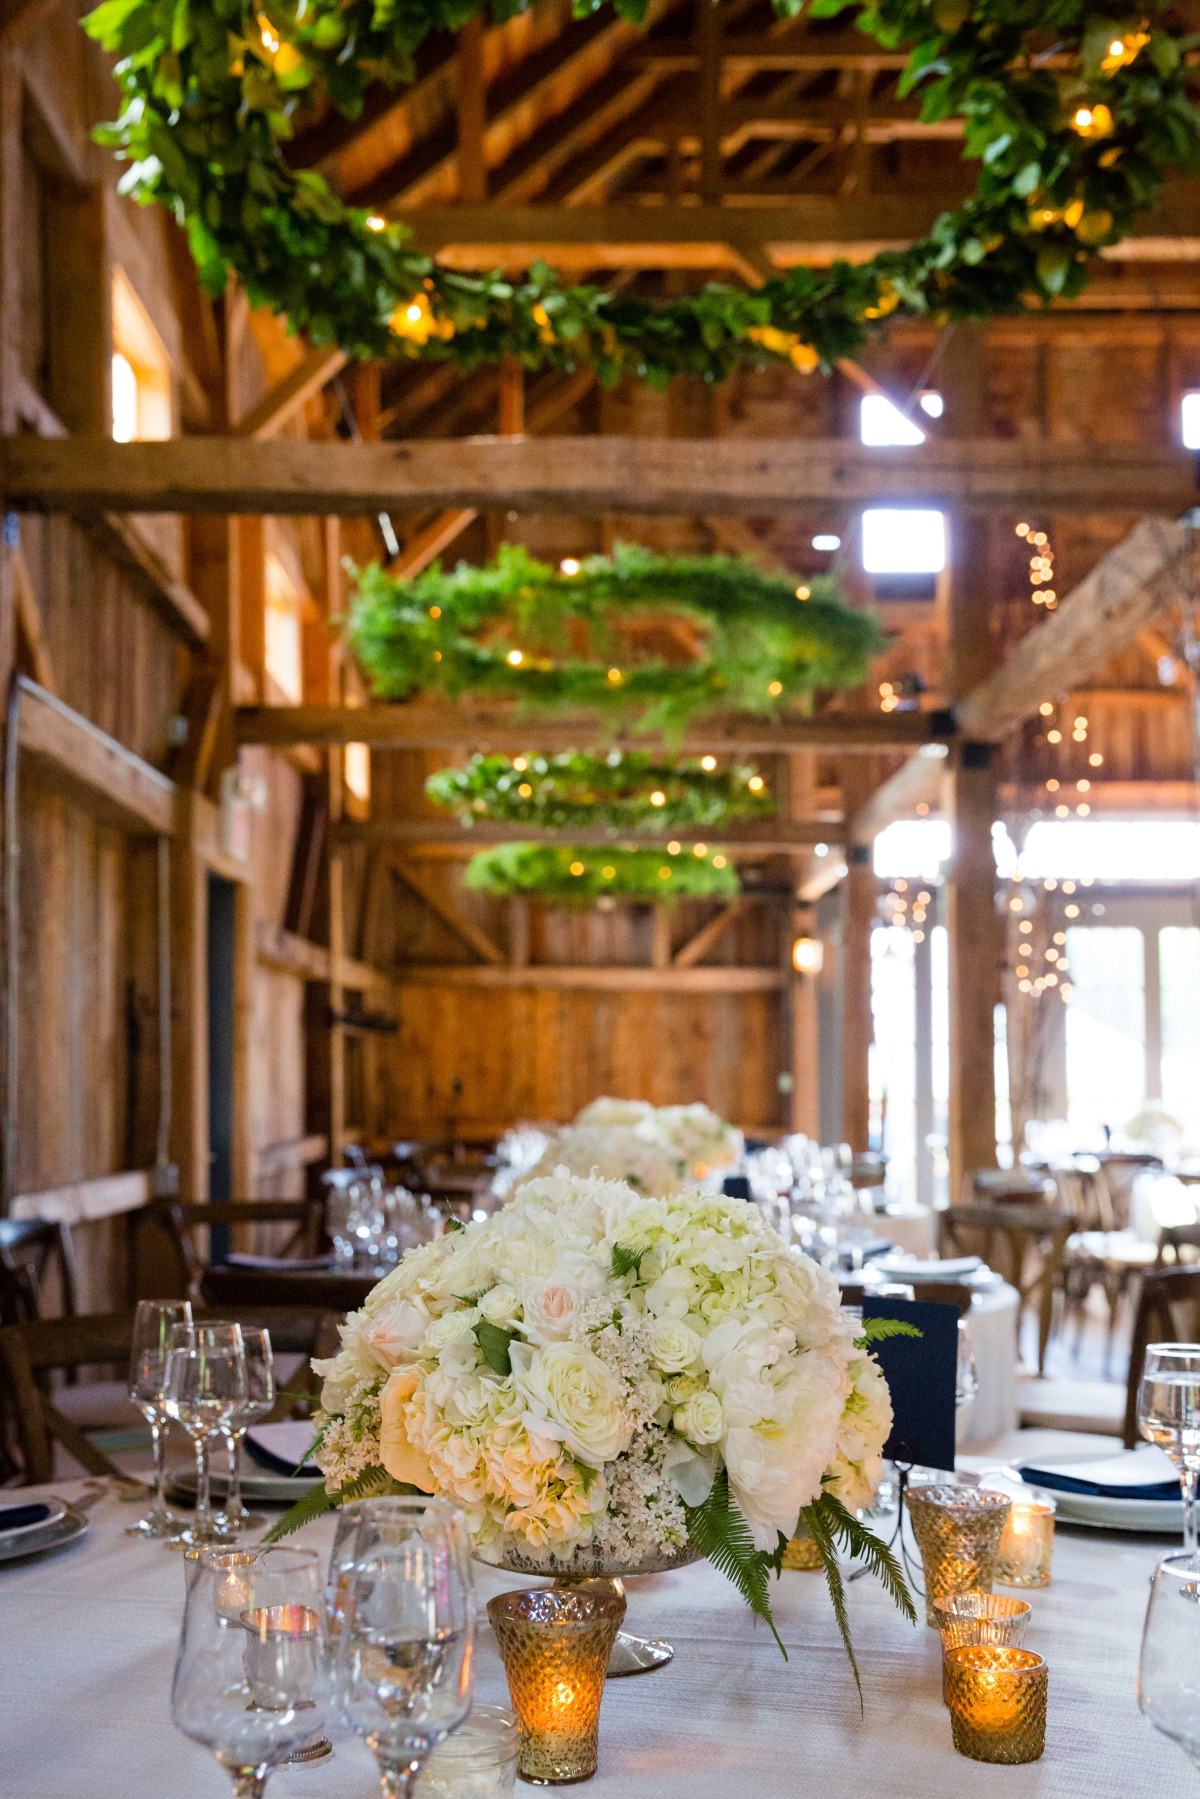 Flanagan Farm Wedding Reception Decor